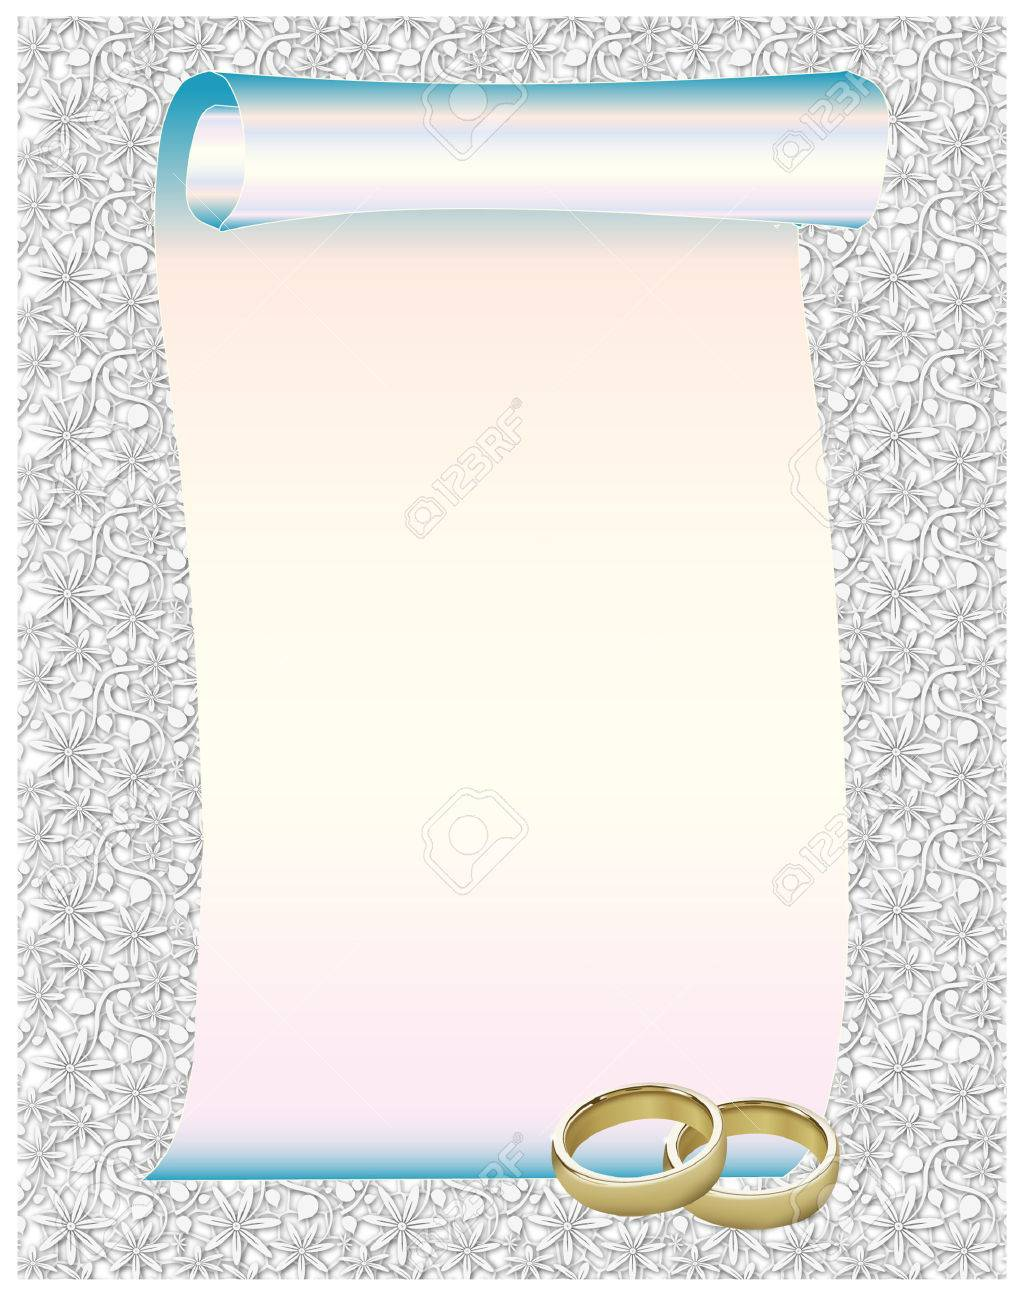 Beautiful Wedding Rings Frame Royalty Free Cliparts Vectors And